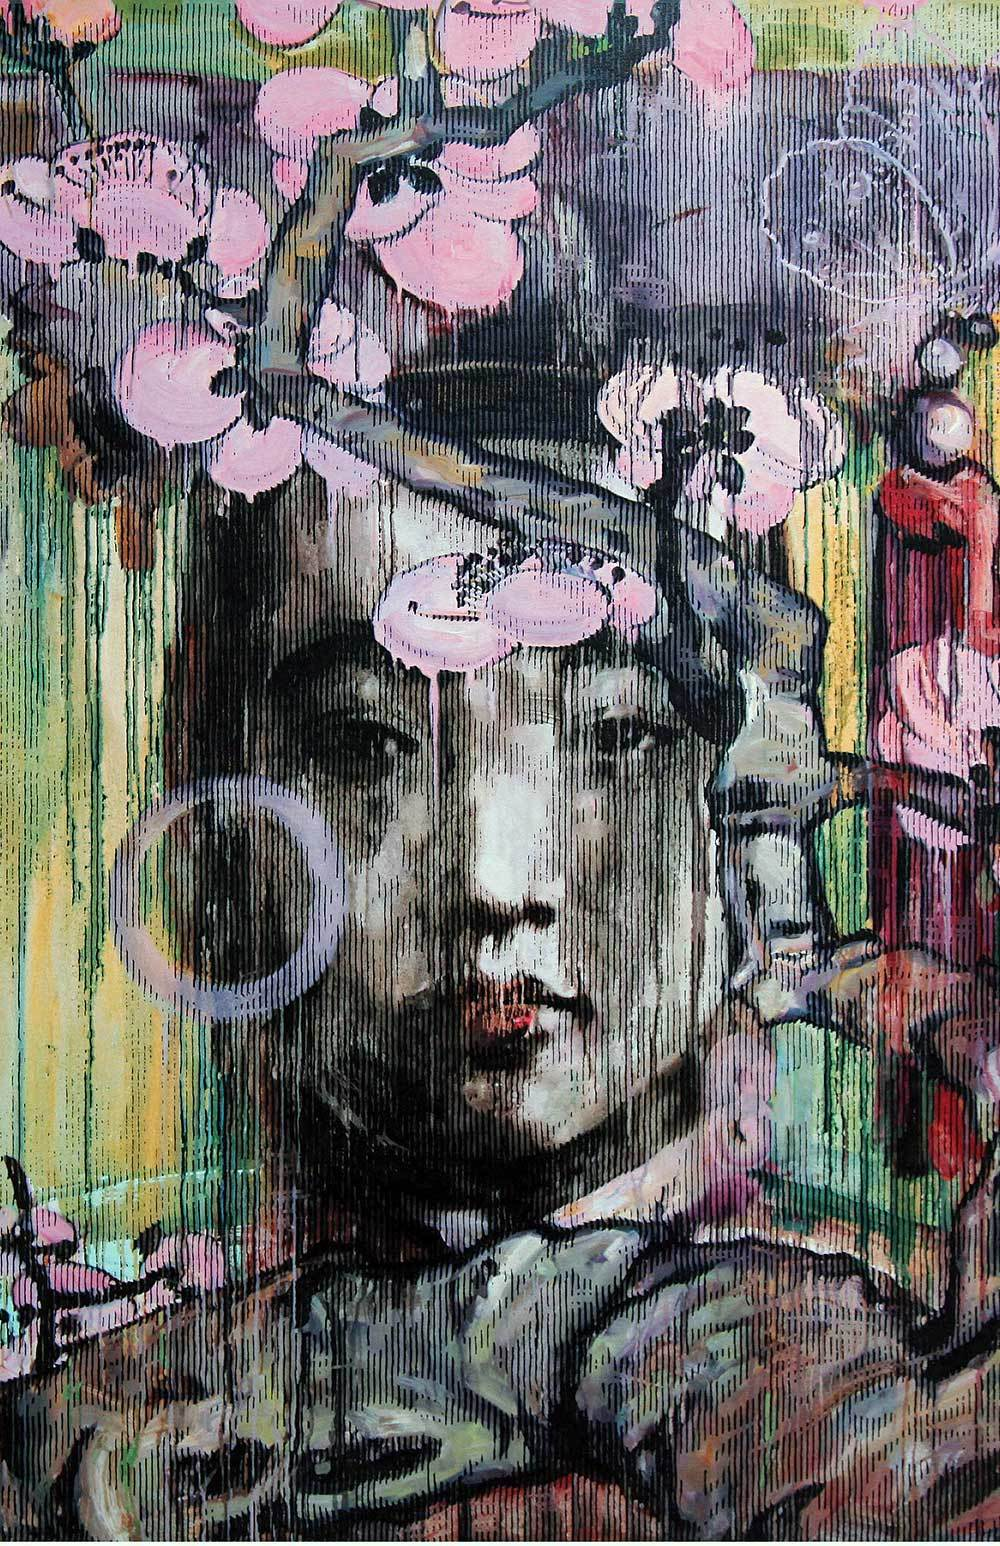 Front cover of  The Lost Poems of Cangjie: Winter Blossom , 2011, by Hung Liu. Woodcut with acrylic; 23.25 x 23.5 in. Copyright © 2011 by Hung Liu